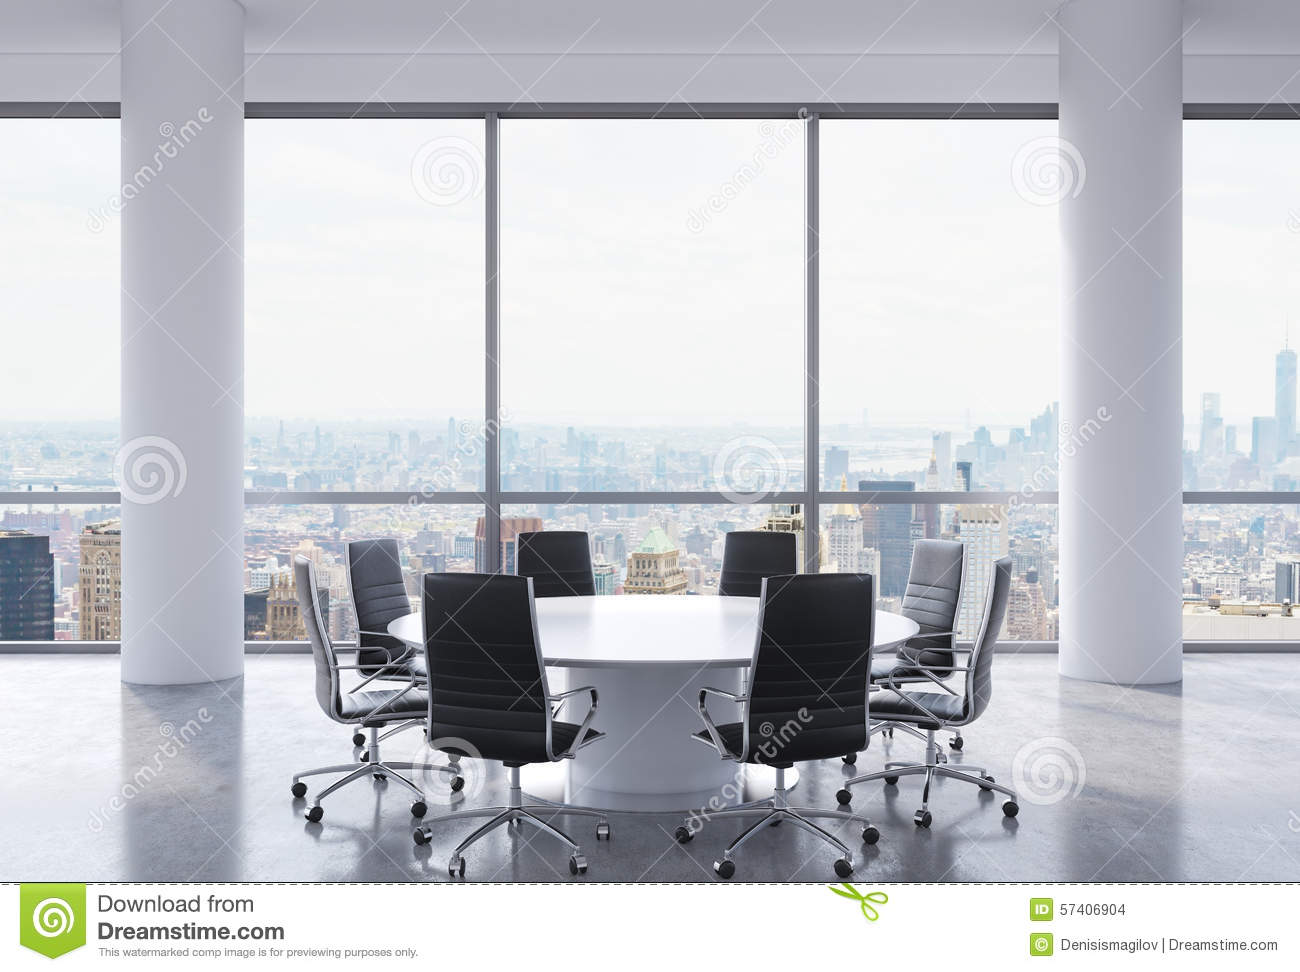 Royalty Free Illustration  Download Panoramic Conference Room In Modern  Office  New York. Panoramic Conference Room In Modern Office  New York City View